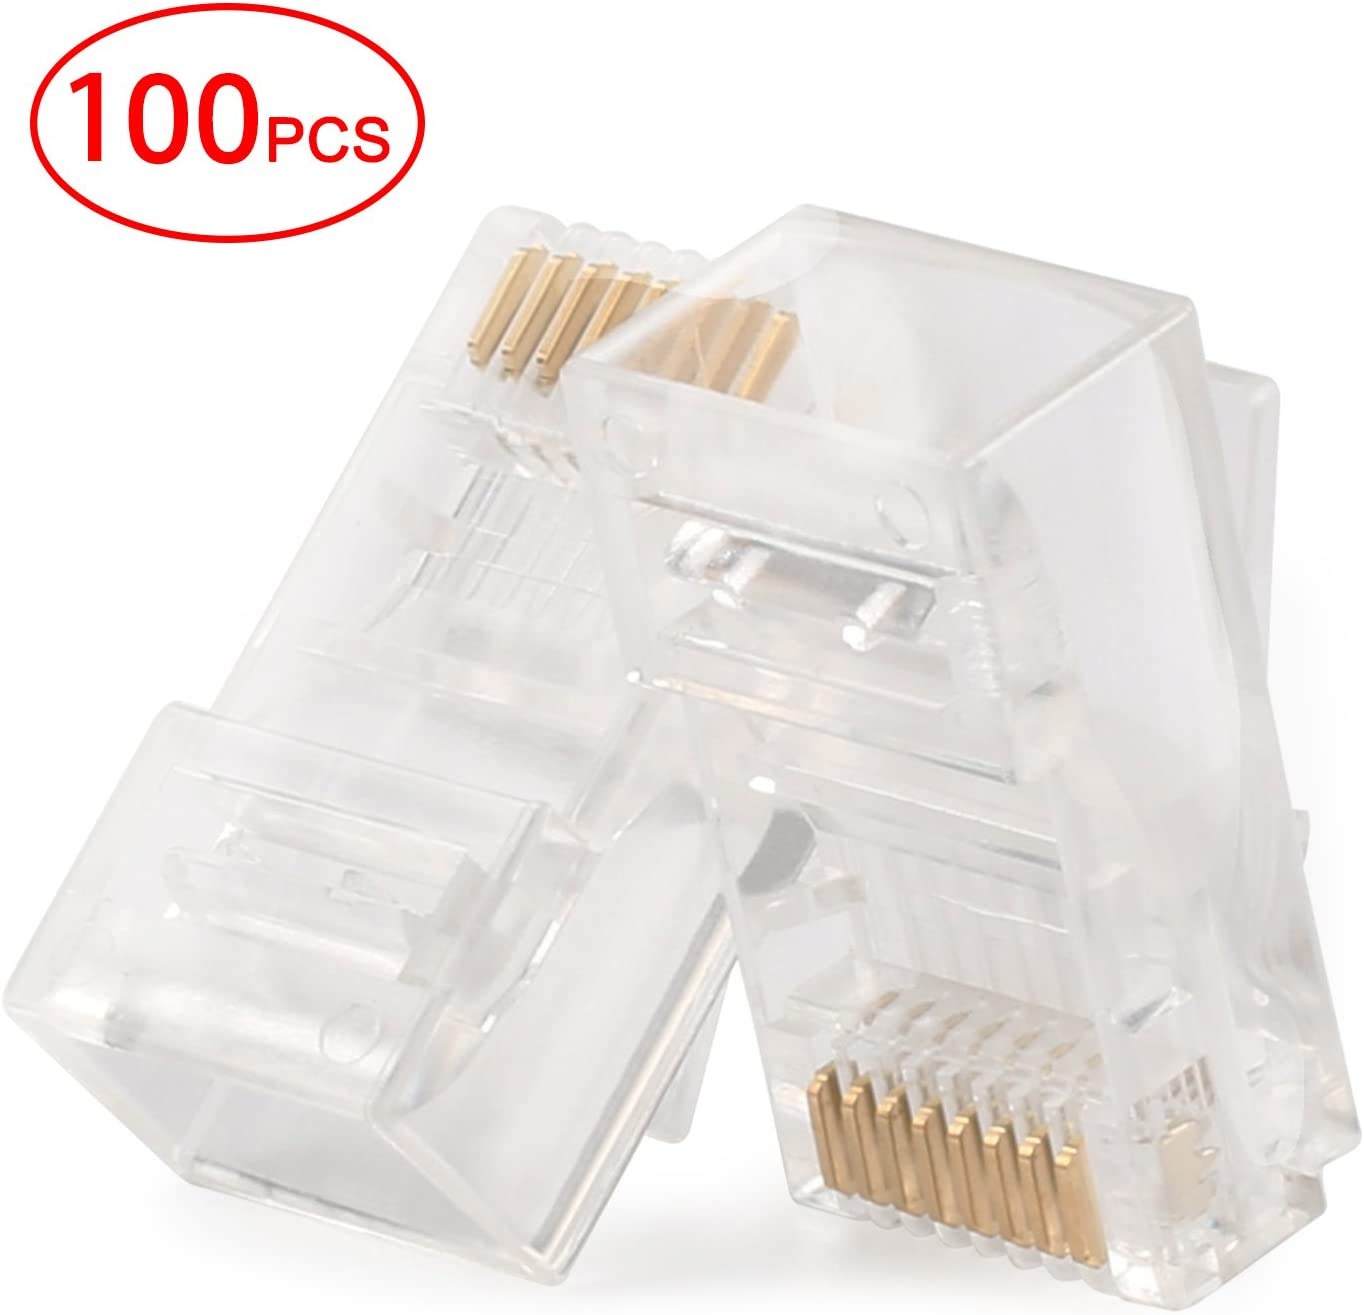 Postta RJ45 CAT5 CAT5E CAT6 Connector 8P8C UTP Gold Plated Ethernet Crystal Head 100 Pieces